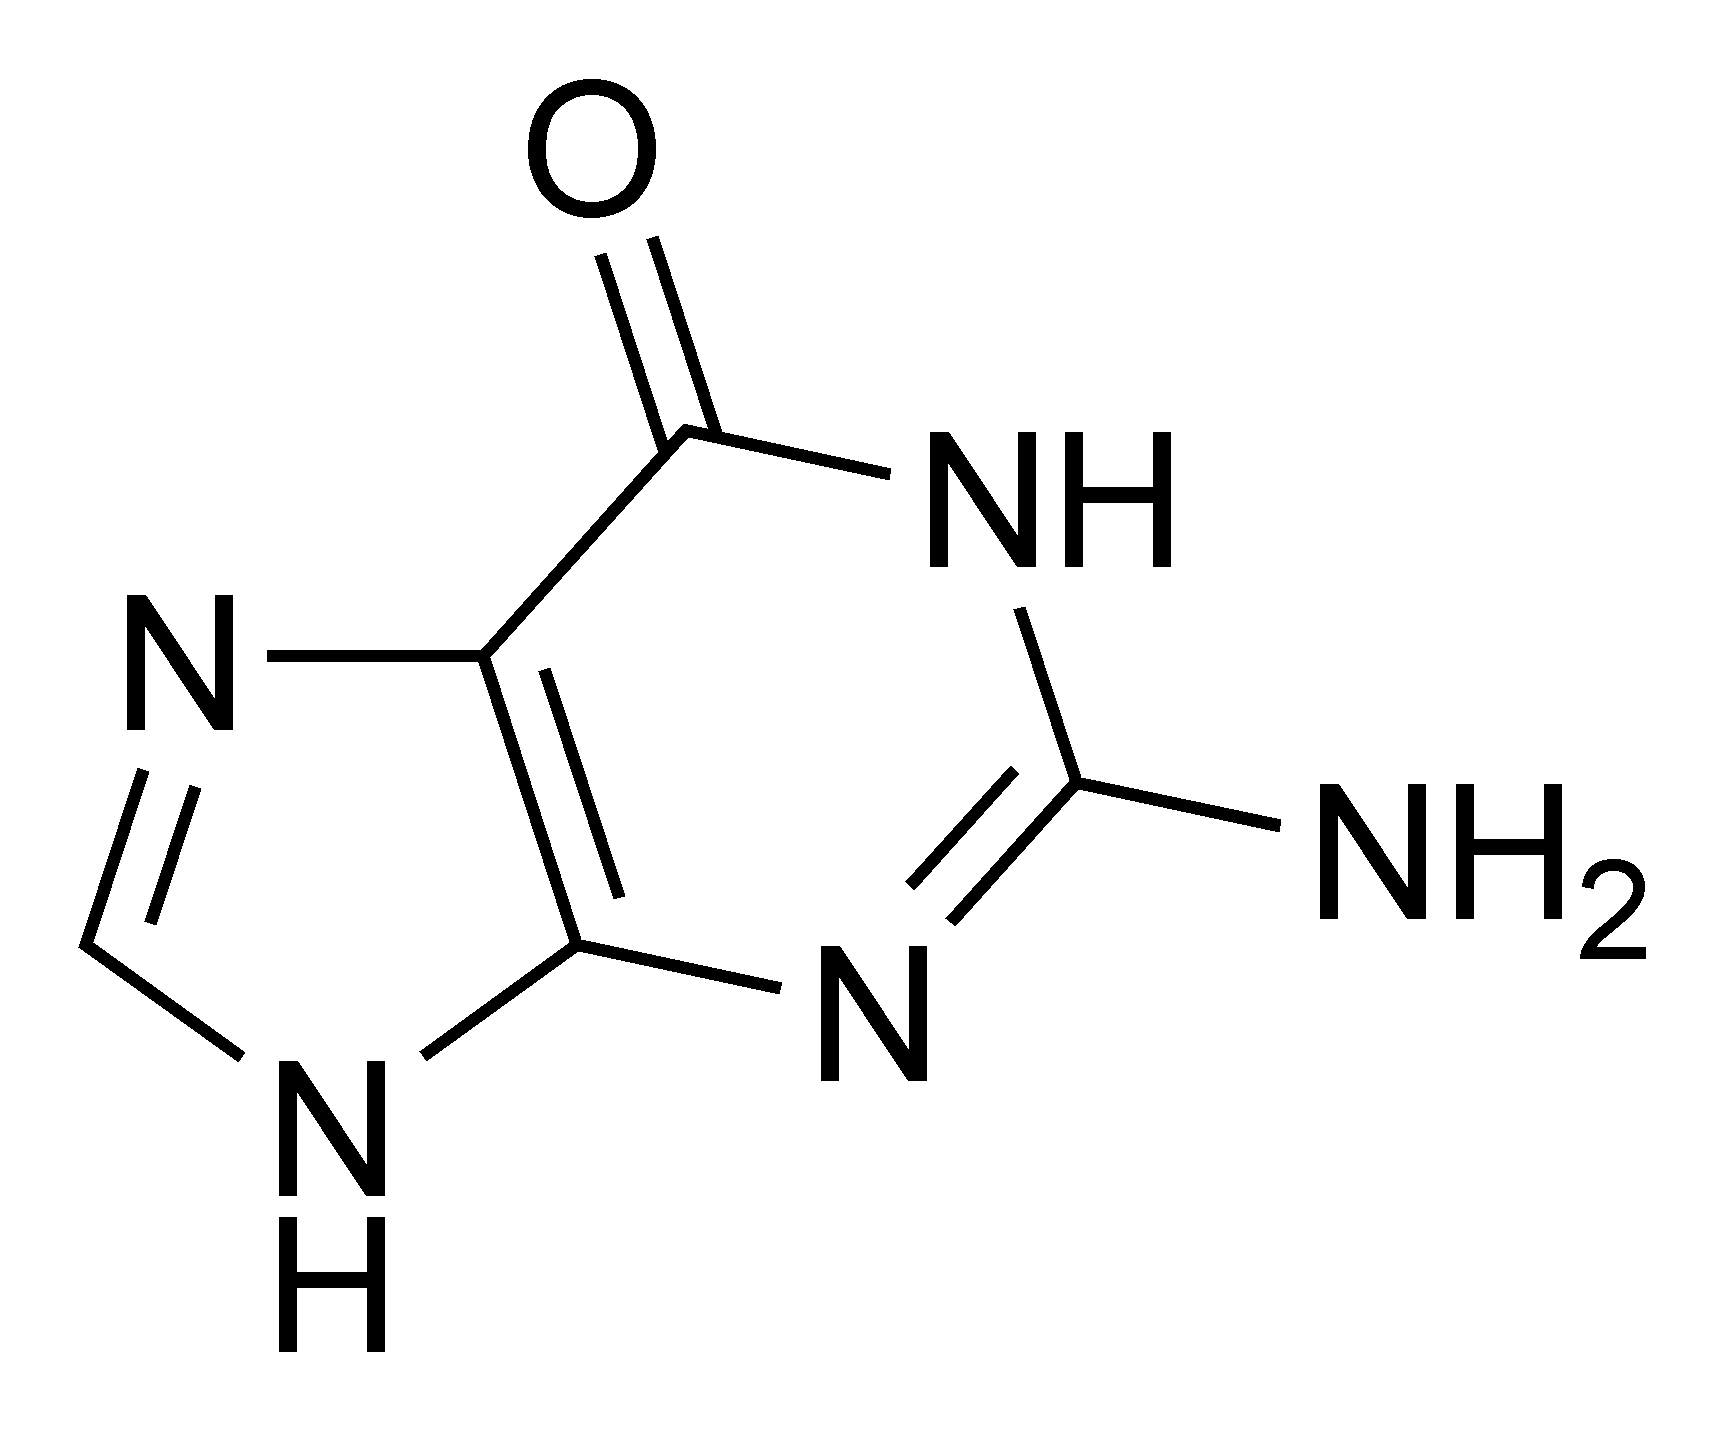 File:Guanine chemical structure.png - Wikimedia Commons